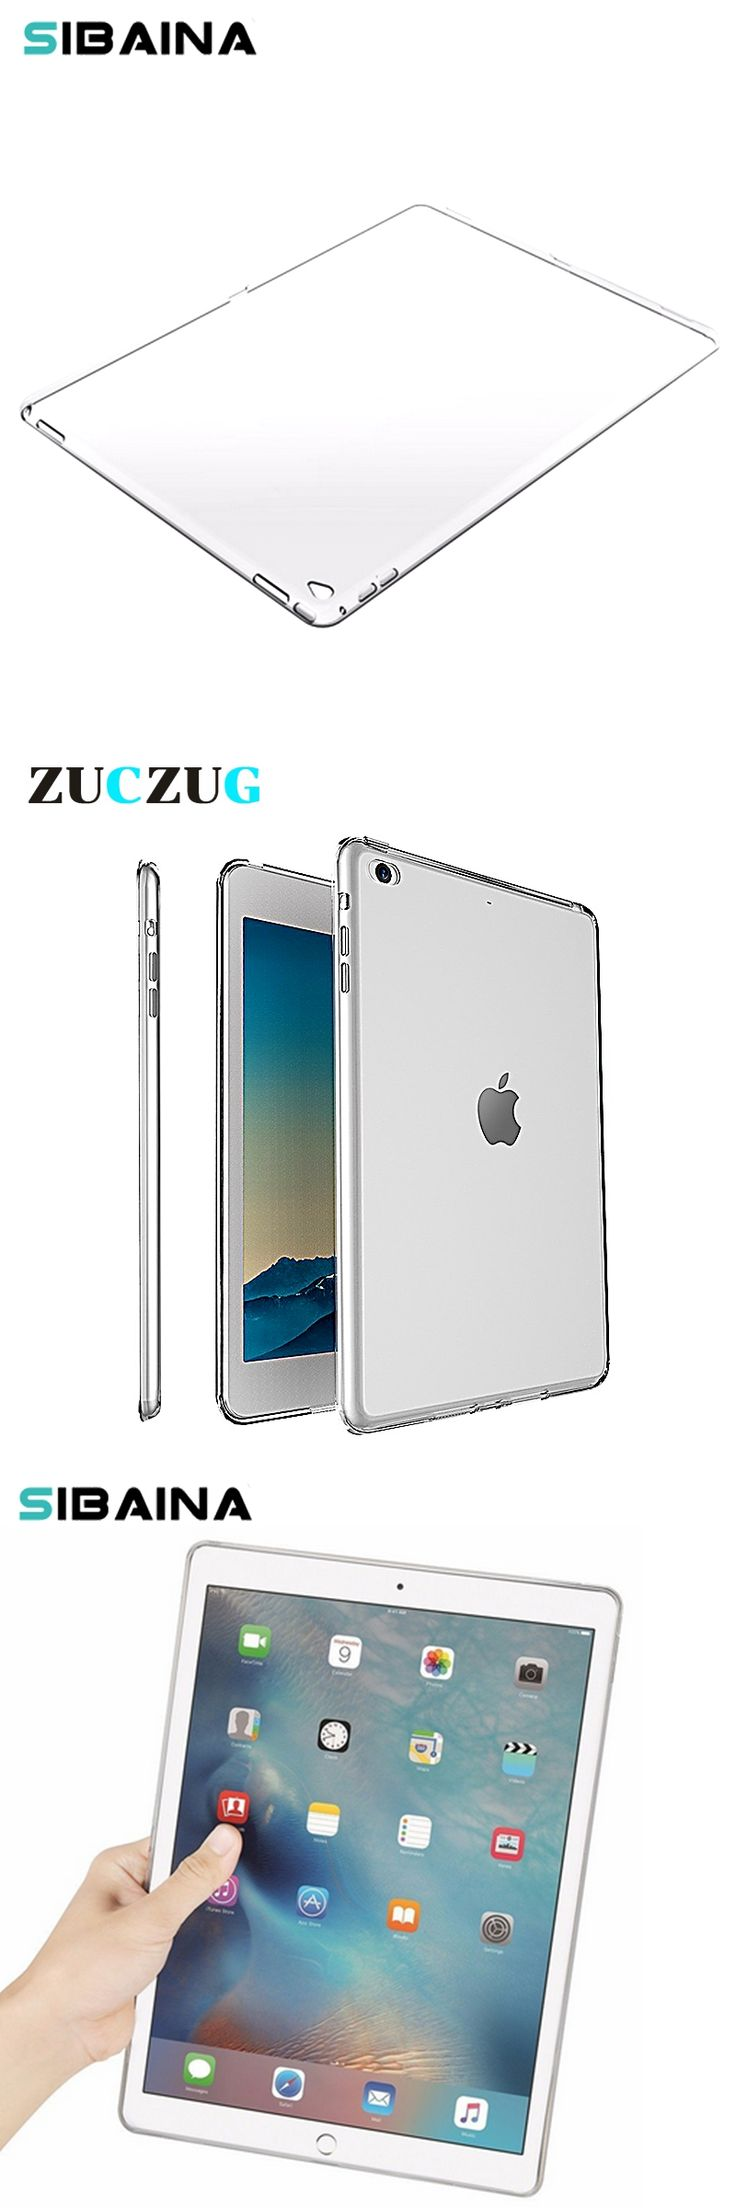 Clear Transparent Silicon TPU Case For iPad Mini 2 3 4 Back Cover Case For iPad Air 2 Case Slim Tablet Cover For iPad 2 3 4 5 6